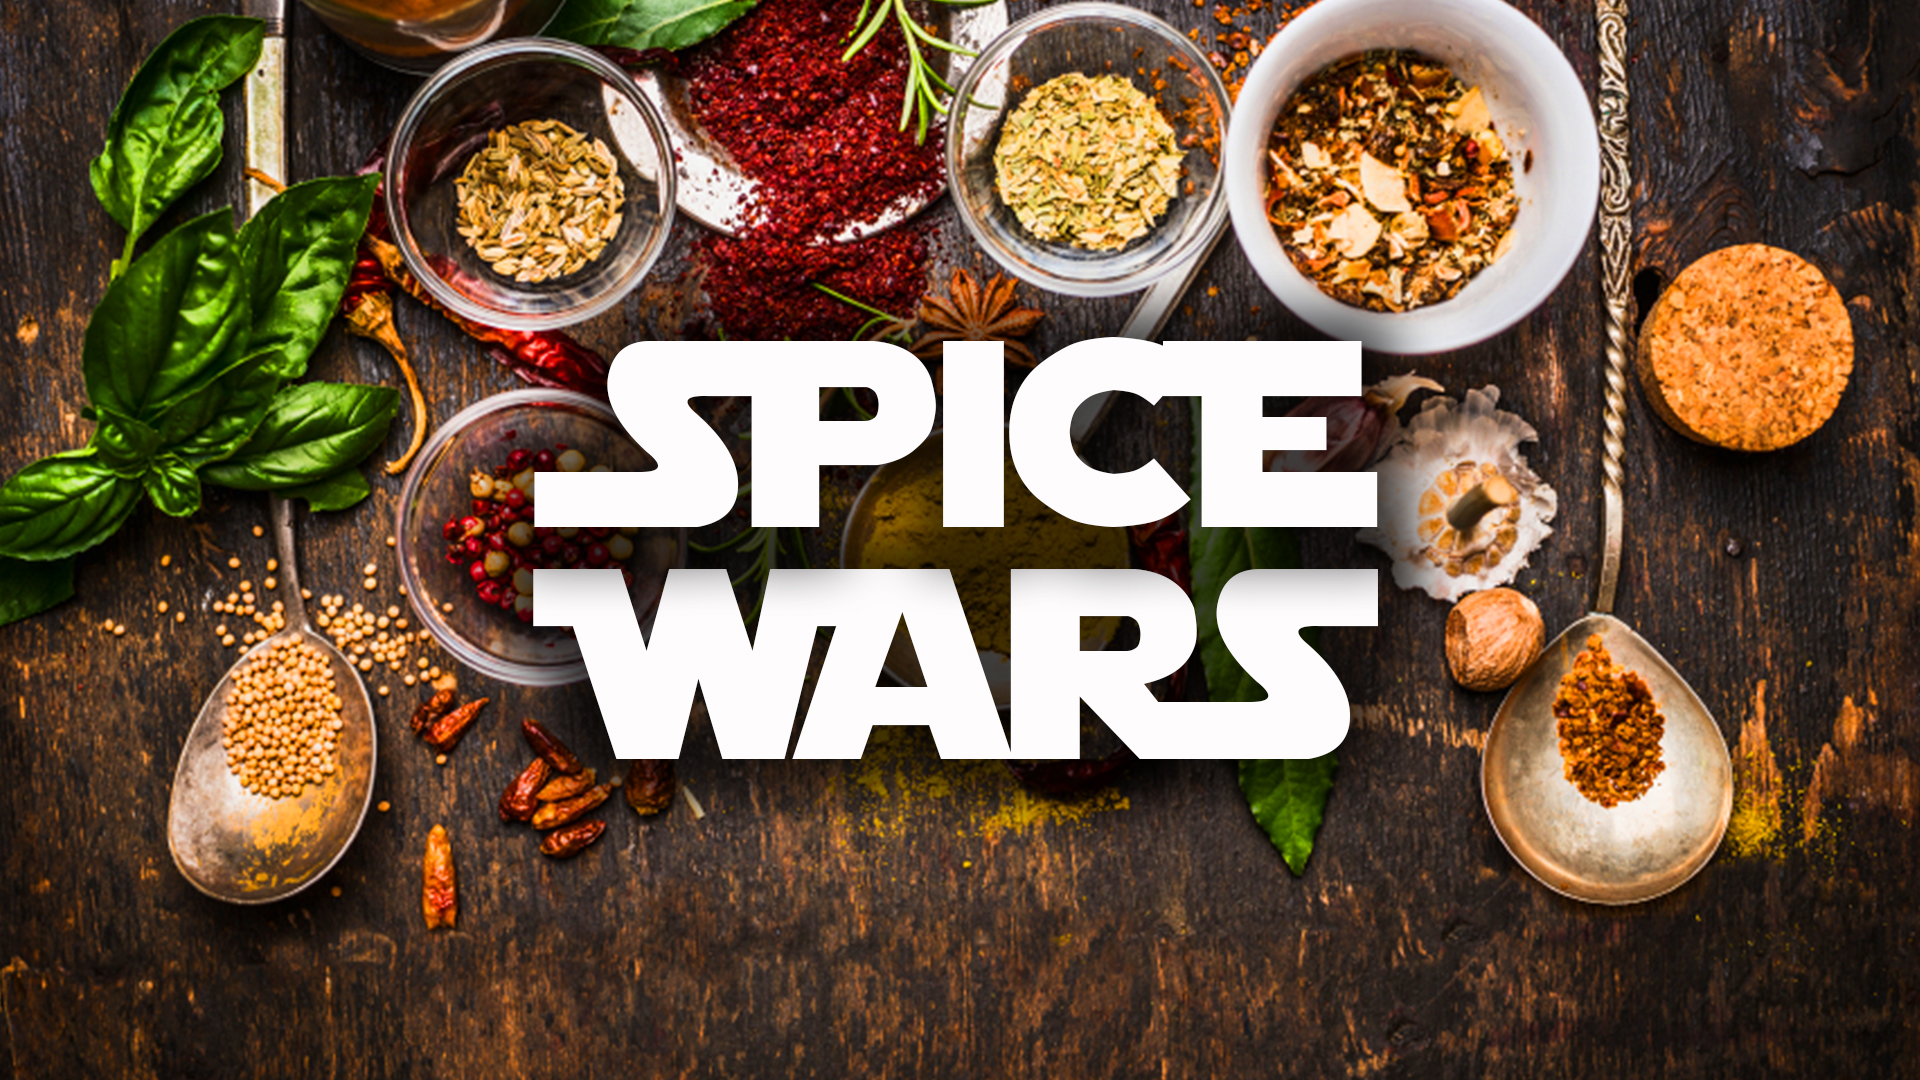 Spice Wars Food Challenge will witness some of Australia's most passionate food bloggers face off with best chefs in one of the most exciting culinary event yet! The event also feature food competitions where visitors can challenge themselves in eating the spiciest and largest quantity of food ever and win the title of the Asia Live Spice War Champion.